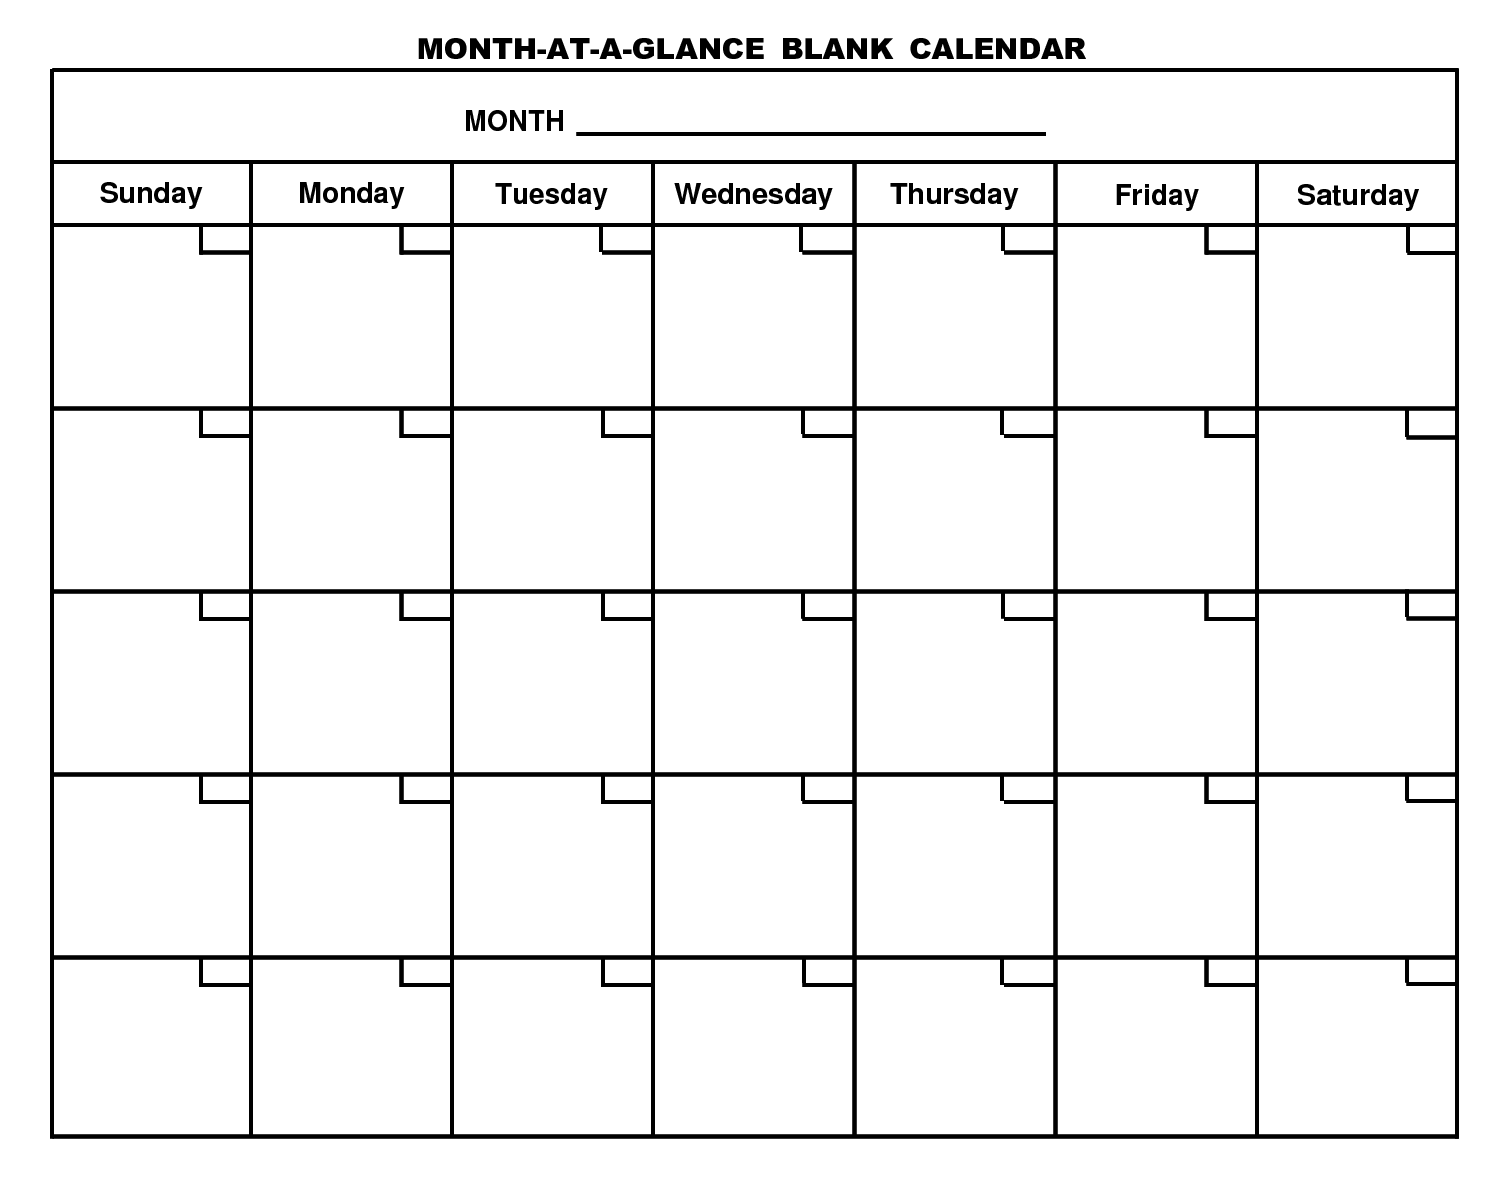 images of blank calendars